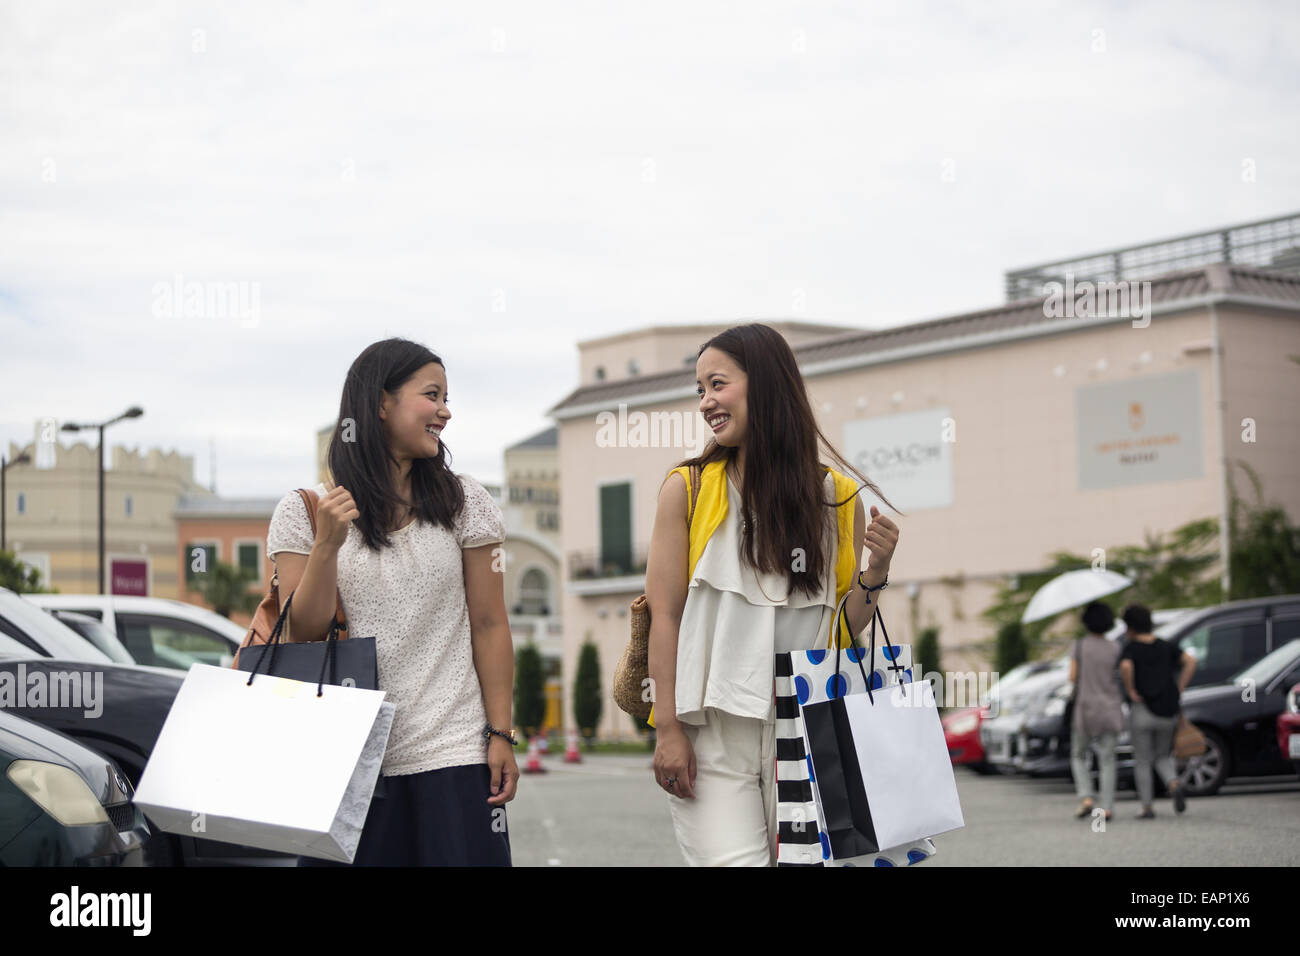 Mother and daughter on a shopping trip. - Stock Image